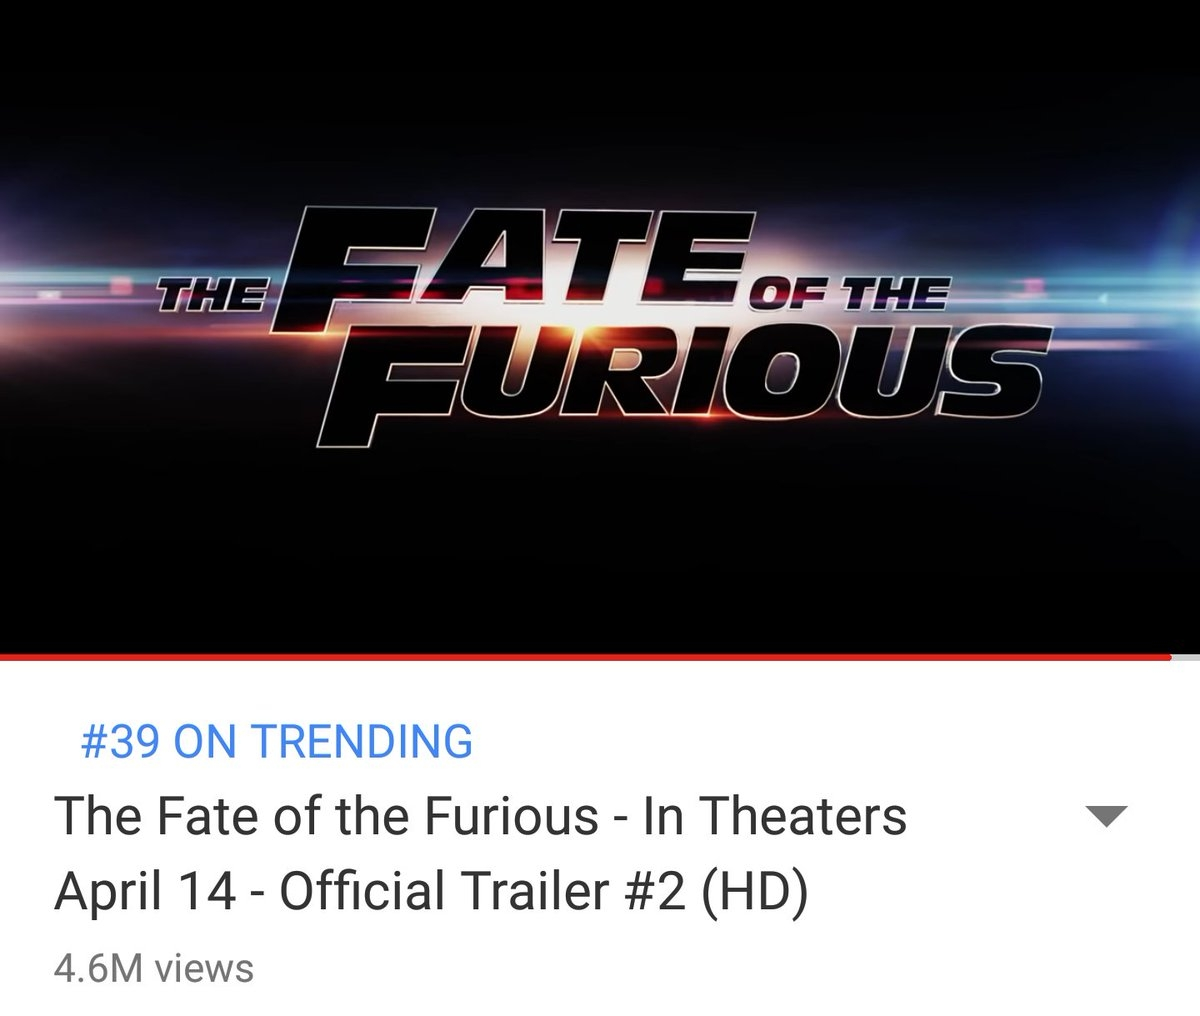 The New The Fate Of The Furious Trailer - And, Why This Is One Of The Most Successful Movie Franchises.